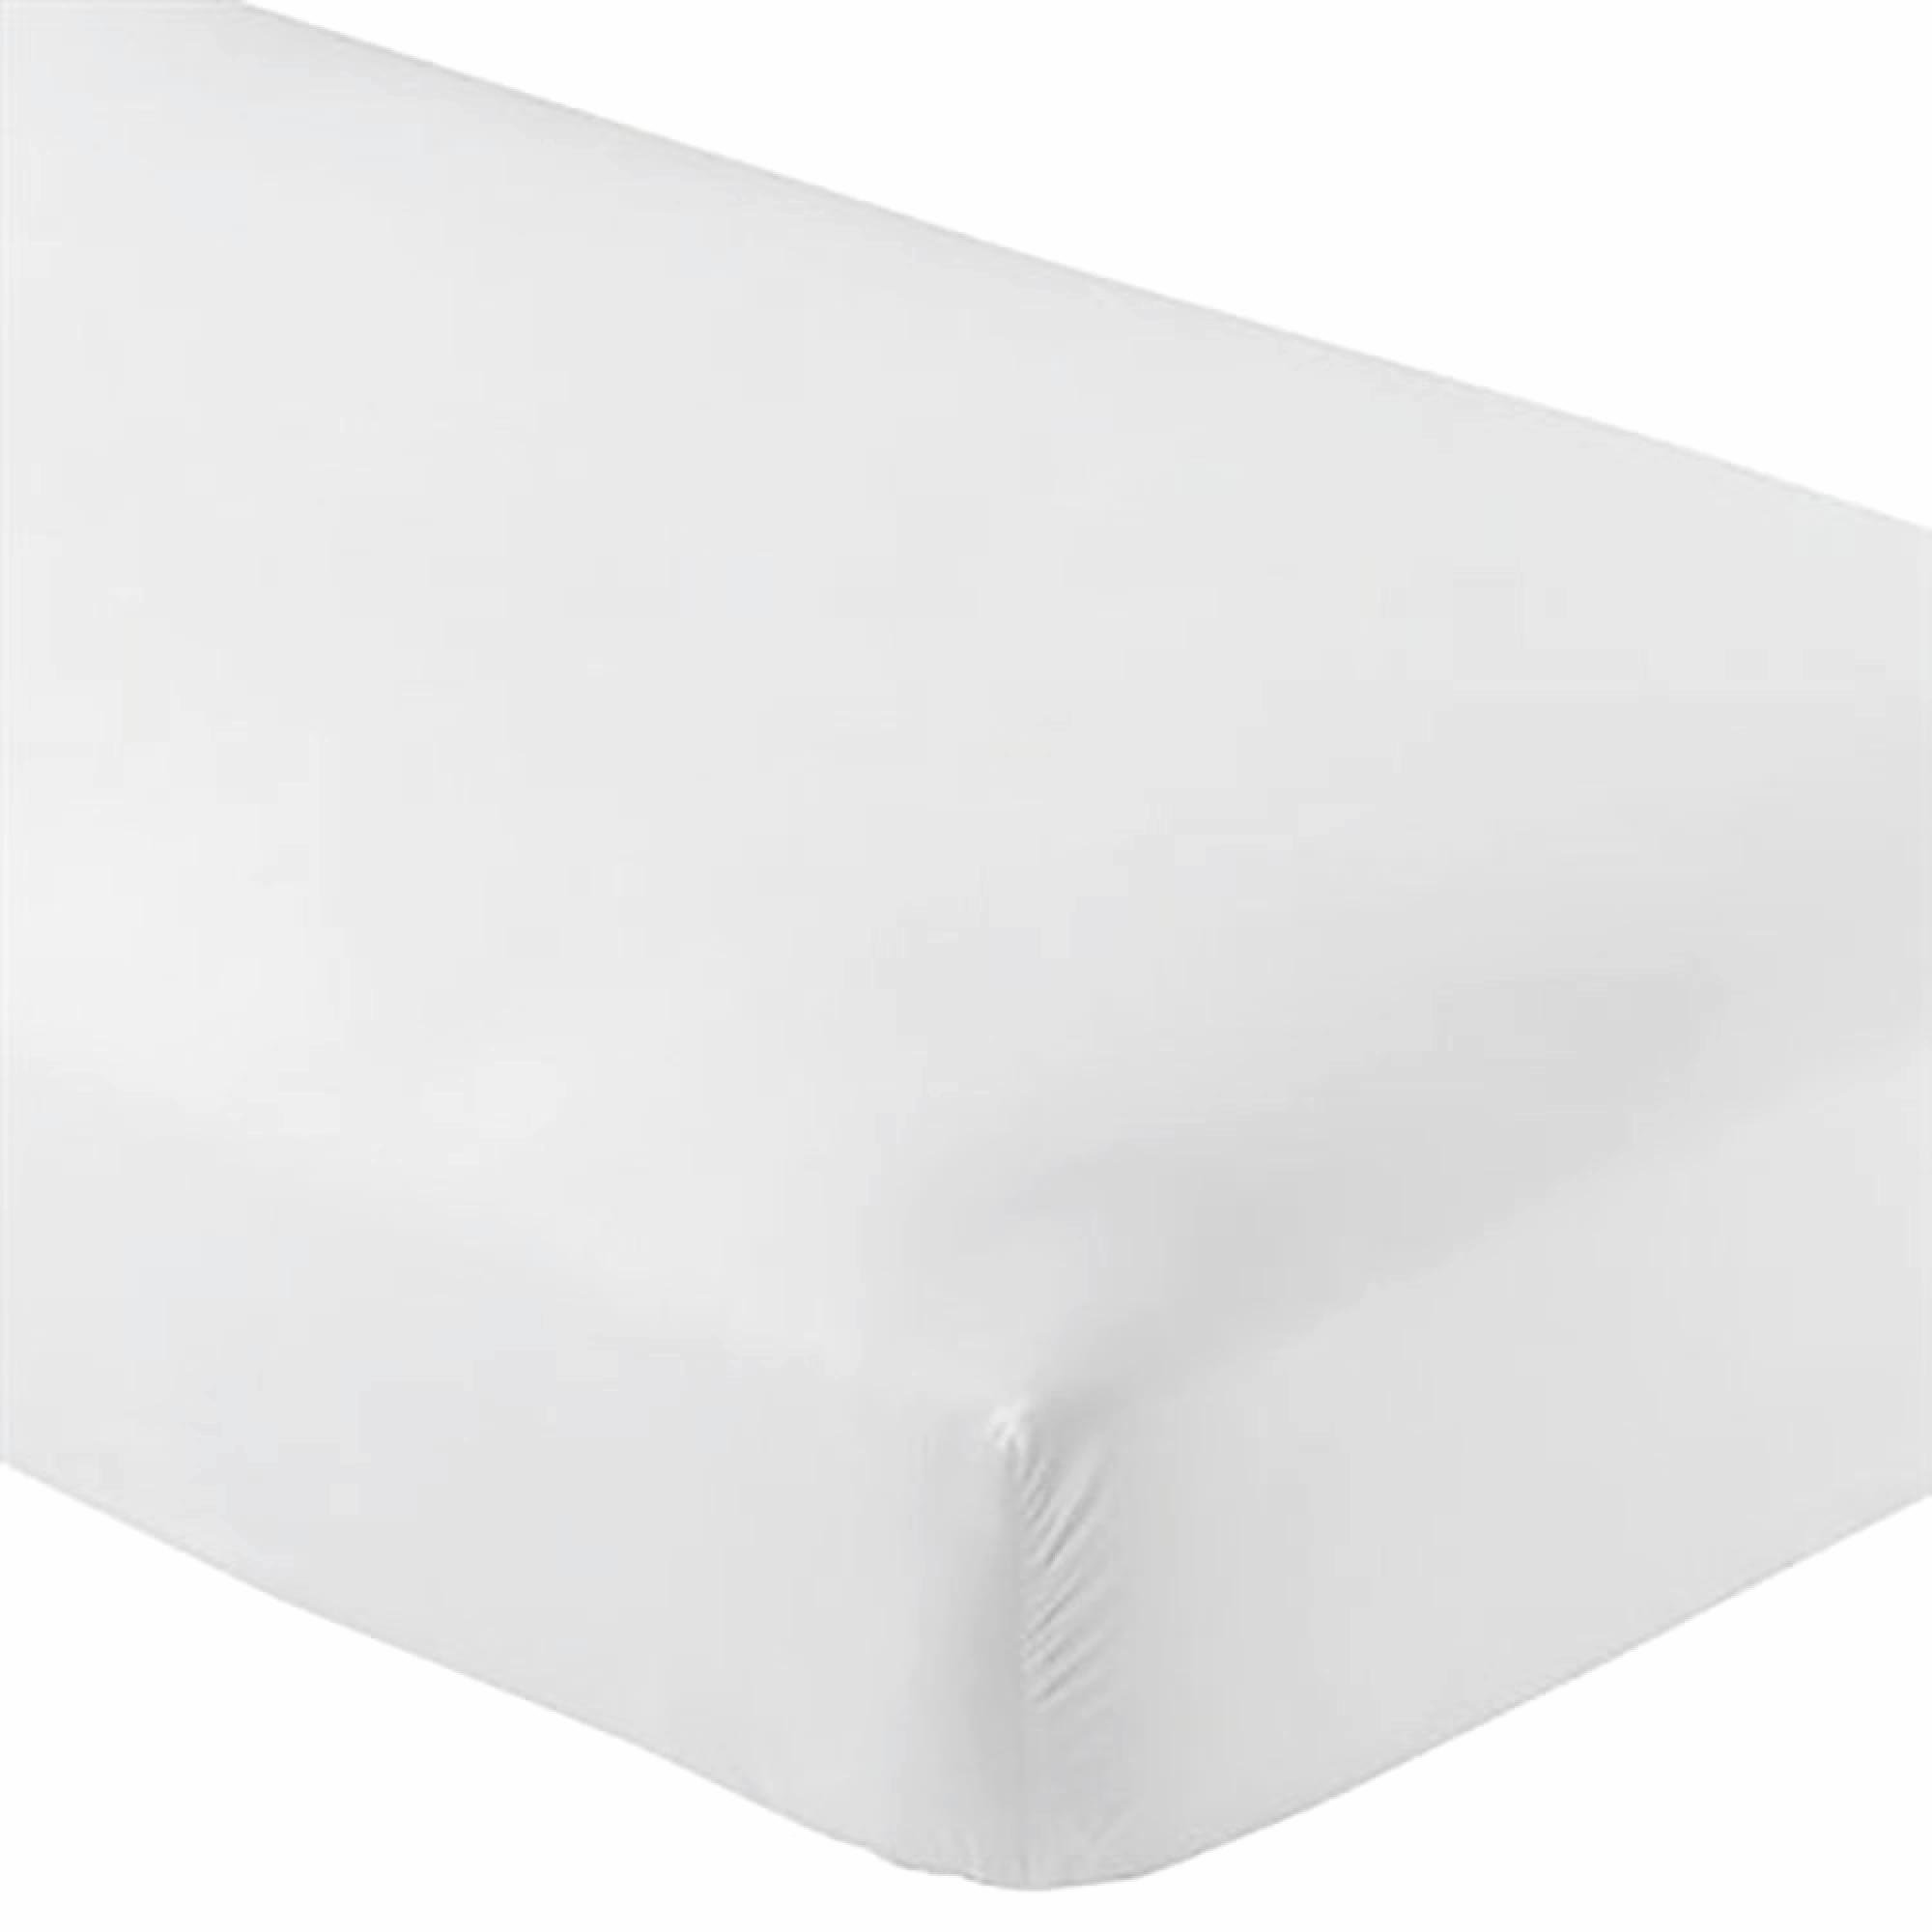 Knit Jersey 100% Cotton 2 Twin XL Fitted Bed Sheets (2-Pack) Soft and Comfy - Twin Extra Long, 15'' Deep Pocket, 39'' x 80'' Great for Dorm Room, Hospital and Split King Dual Adjustable Beds (White) by Crescent Bedding